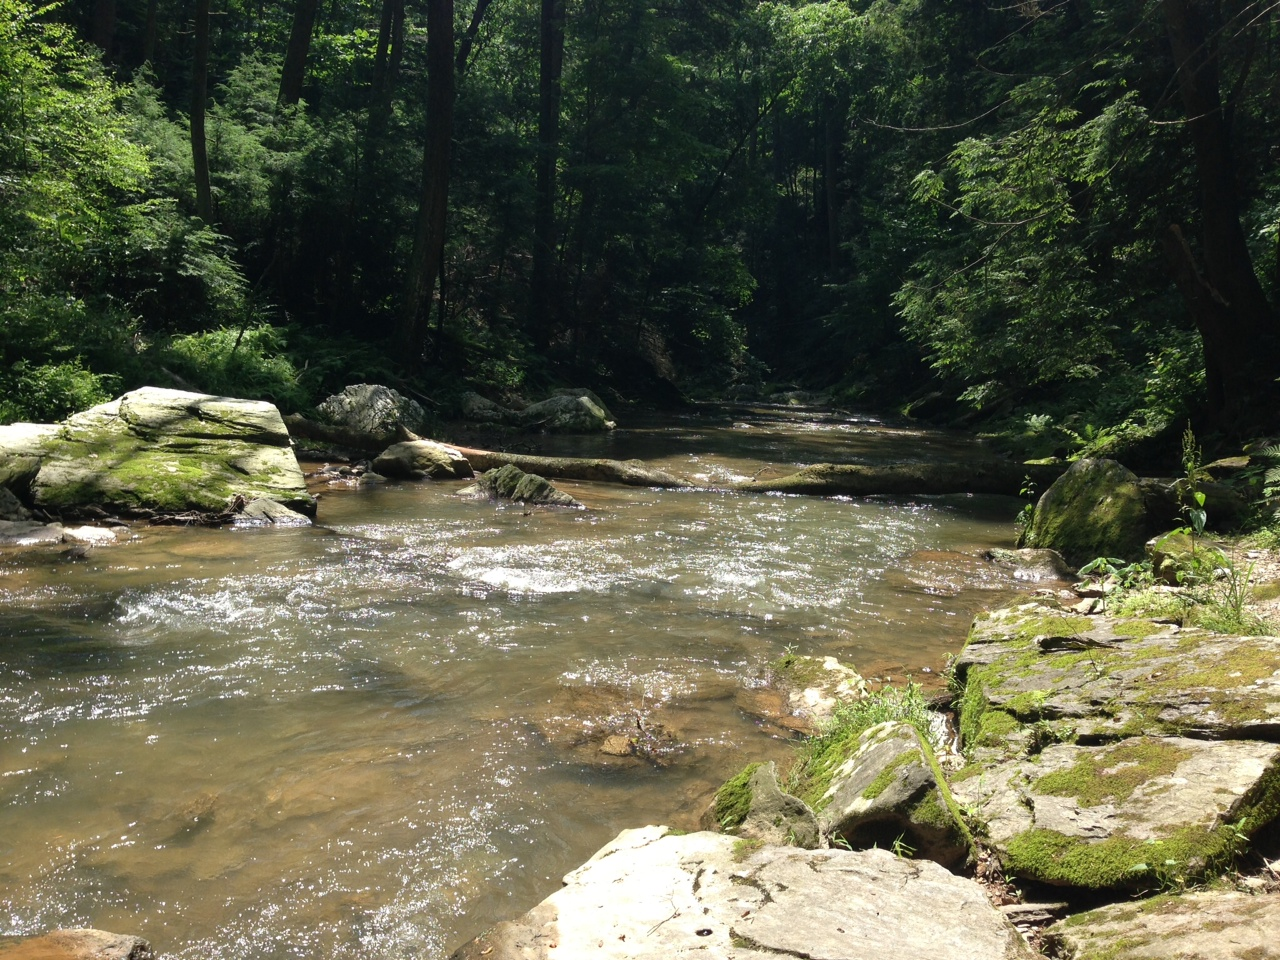 Otter Creek Campground is a scenic escape bordering the Susquehanna River and Otter Creek.